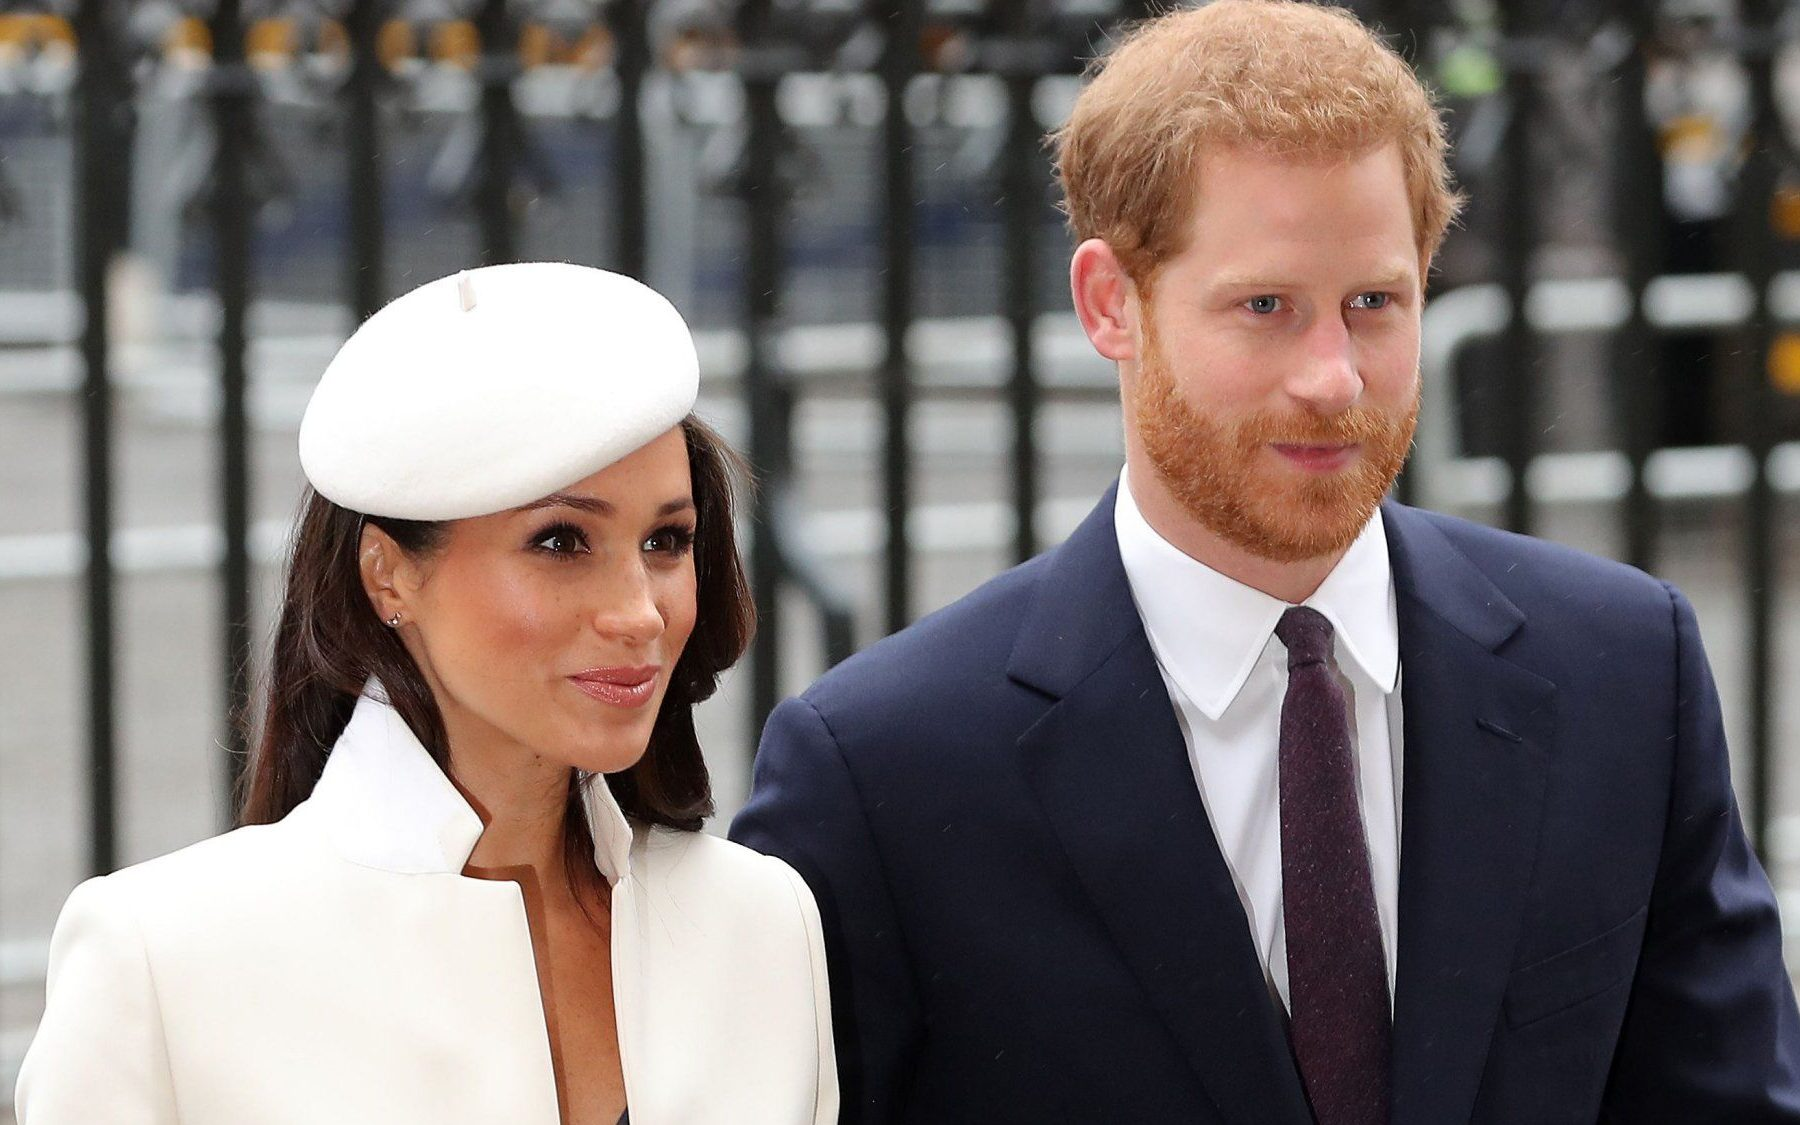 Britain's Prince Harry (R) and his fiancee US actress Meghan Markle attend a Commonwealth Day Service at Westminster Abbey in central London, on March 12, 2018. Britain's Queen Elizabeth II has been the Head of the Commonwealth throughout her reign. Organised by the Royal Commonwealth Society, the Service is the largest annual inter-faith gathering in the United Kingdom. / AFP PHOTO / Daniel LEAL-OLIVASDANIEL LEAL-OLIVAS/AFP/Getty Images